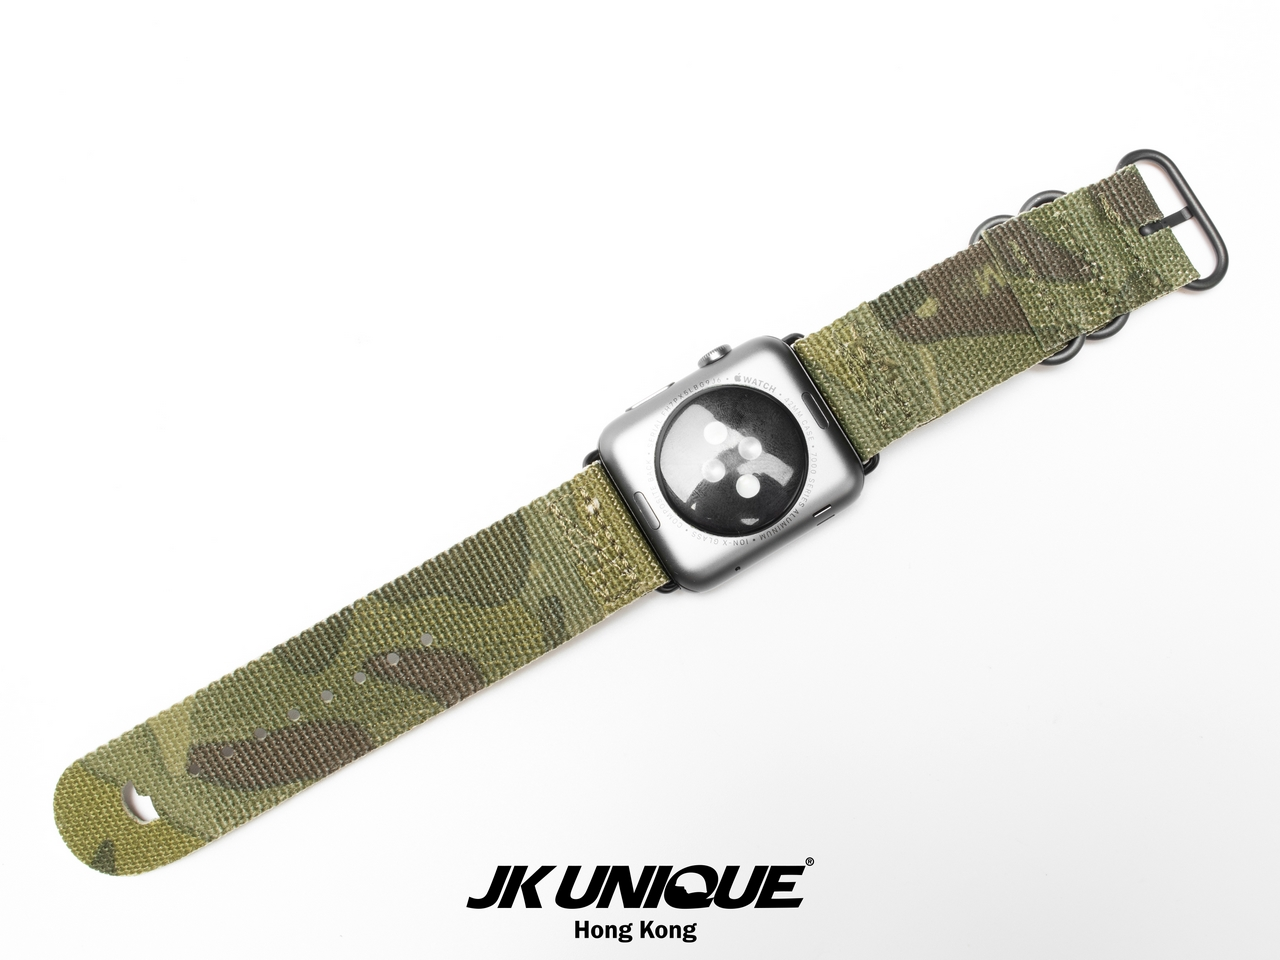 JK-UNIQUE-CAMO-NATO-Apple-Watch-Strap-42mm-BK-Multicam-Tropic-4 (1280).jpg